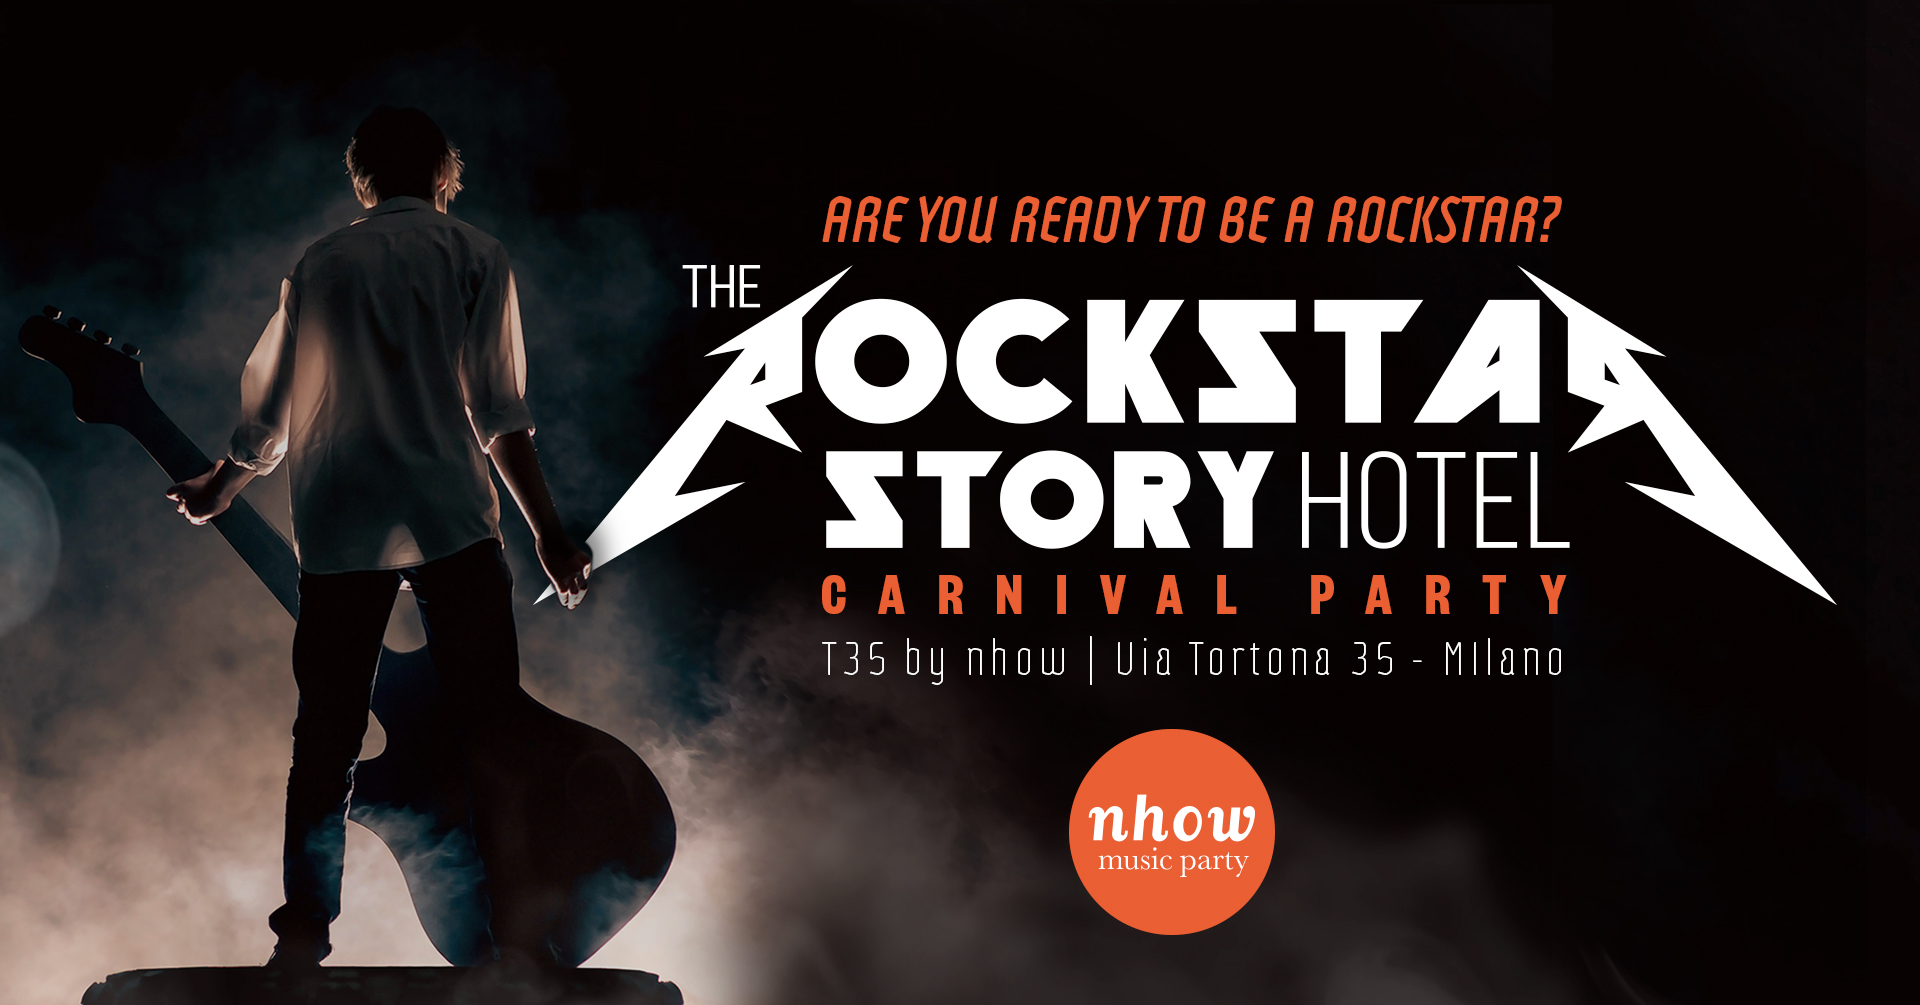 nhow hotel private party The Rockstar Story Hotel / Carnival Party   YOUparti